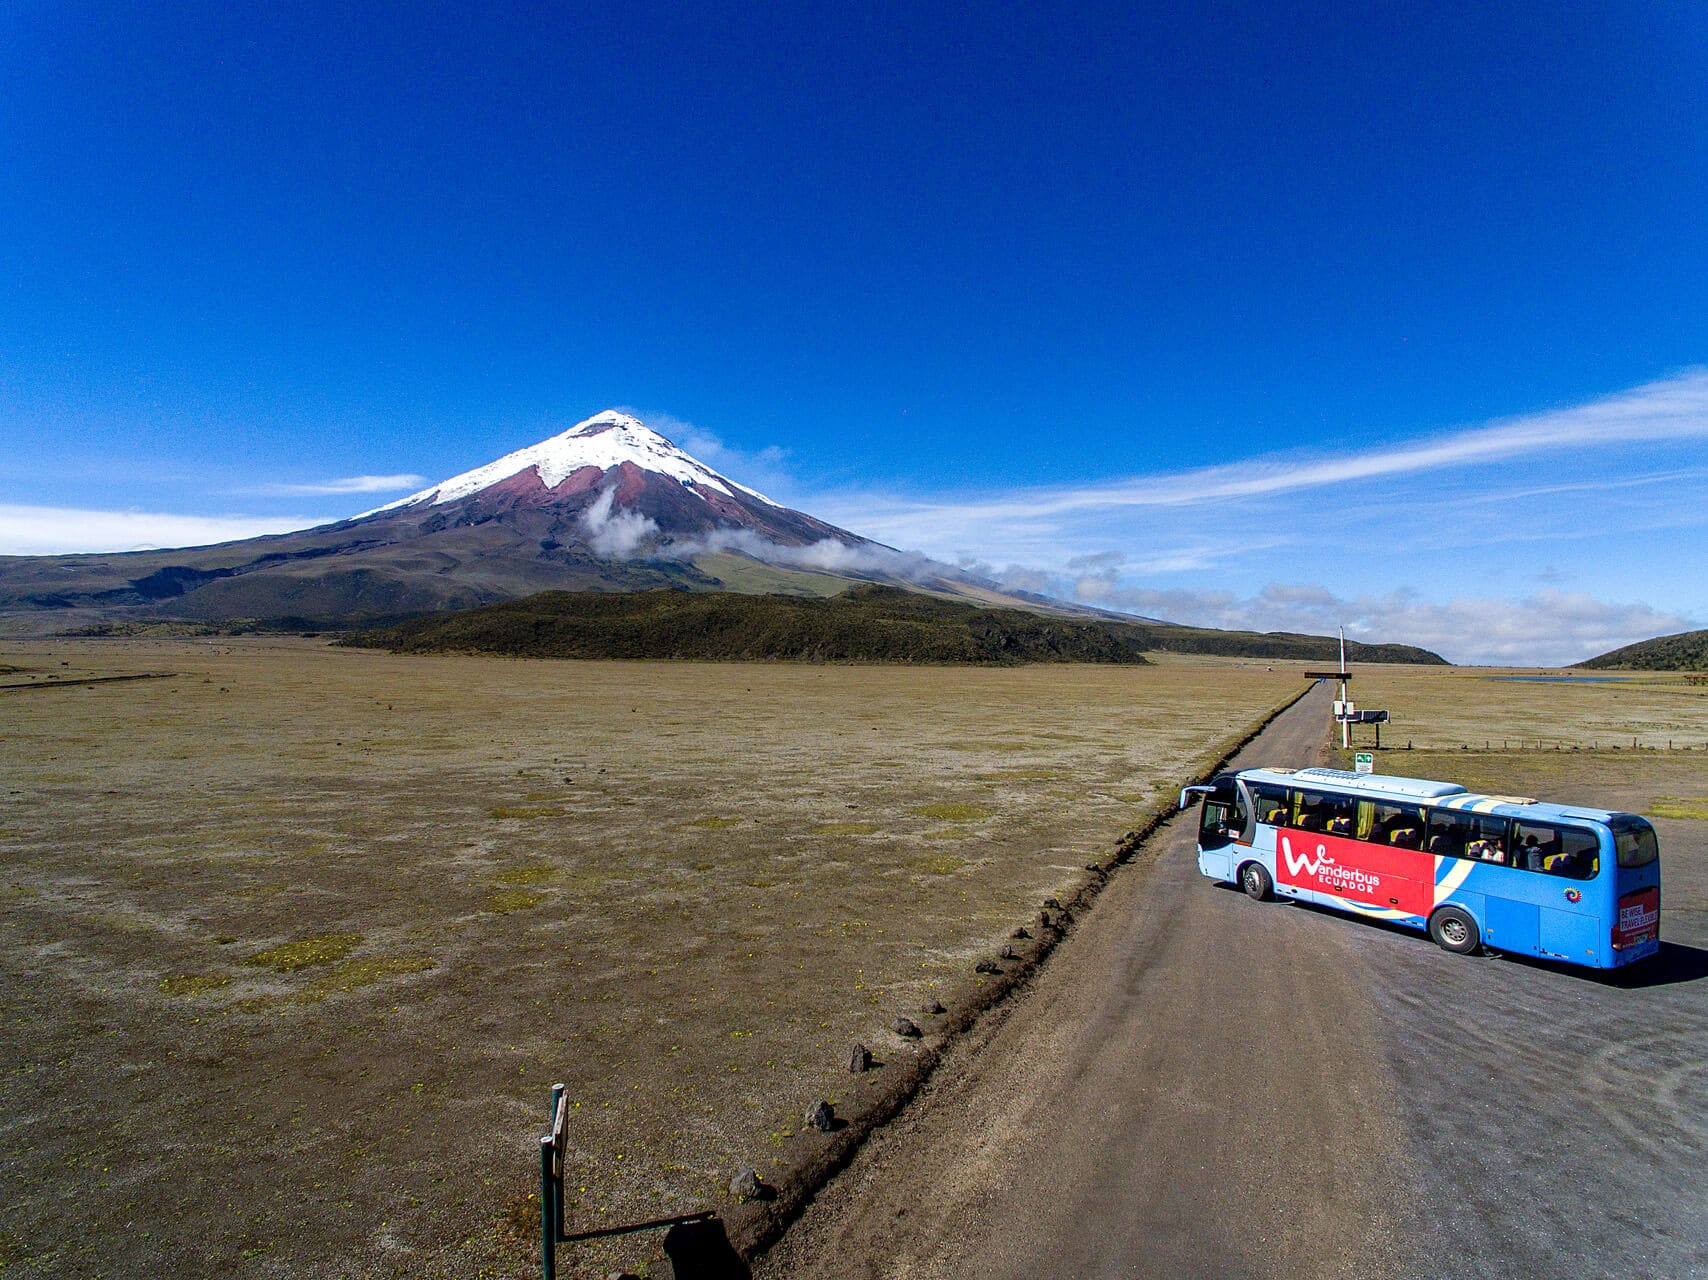 Cotopaxi day tours